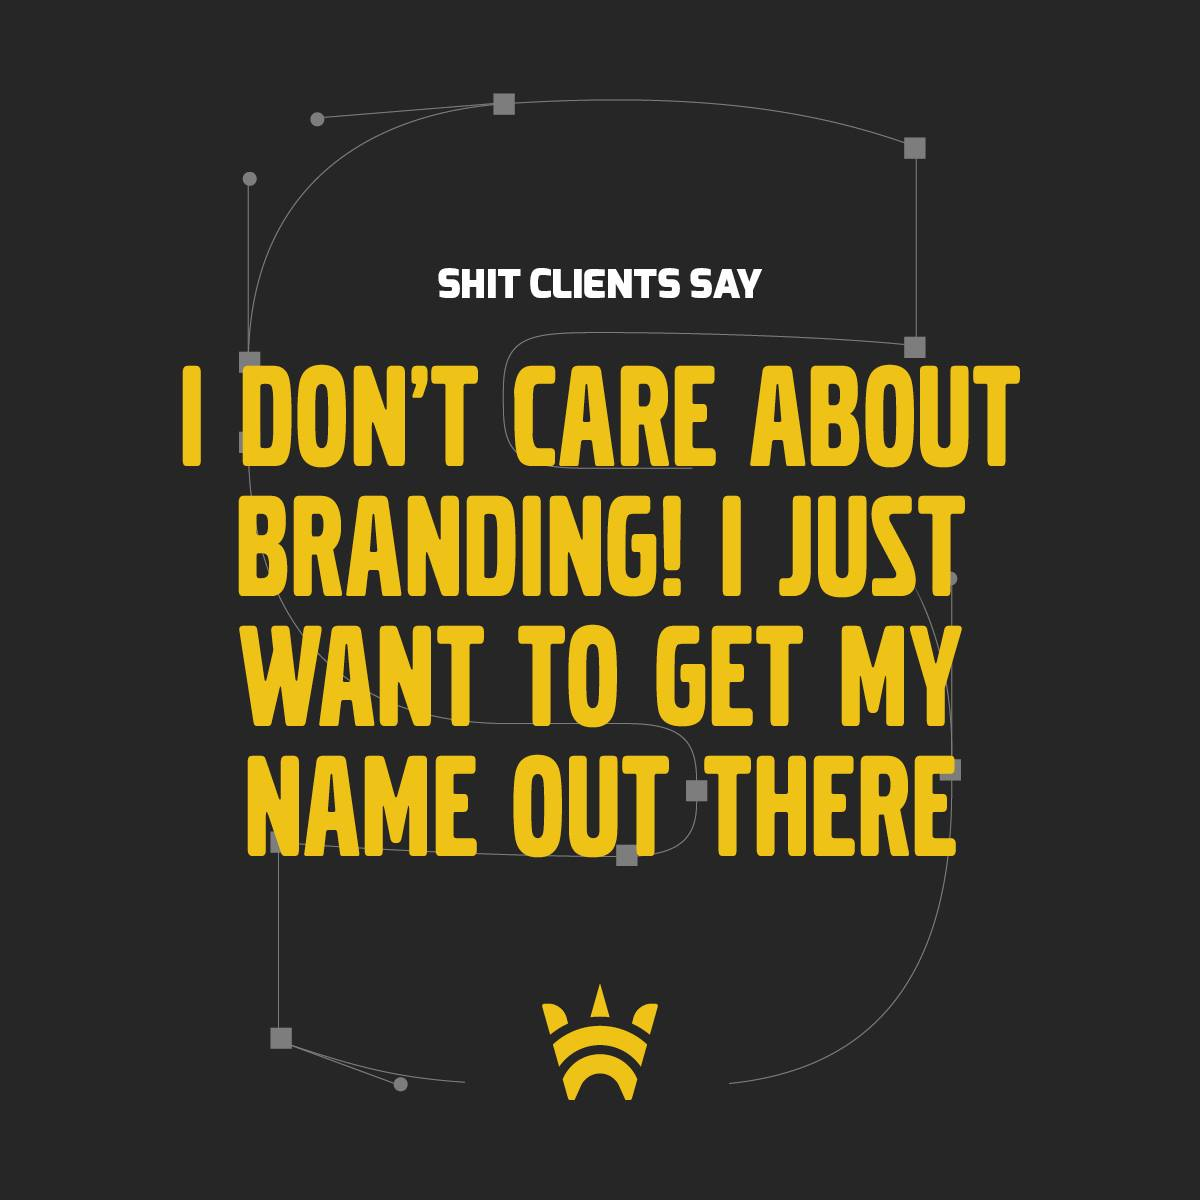 I don't care about branding! I just want to get my name out there